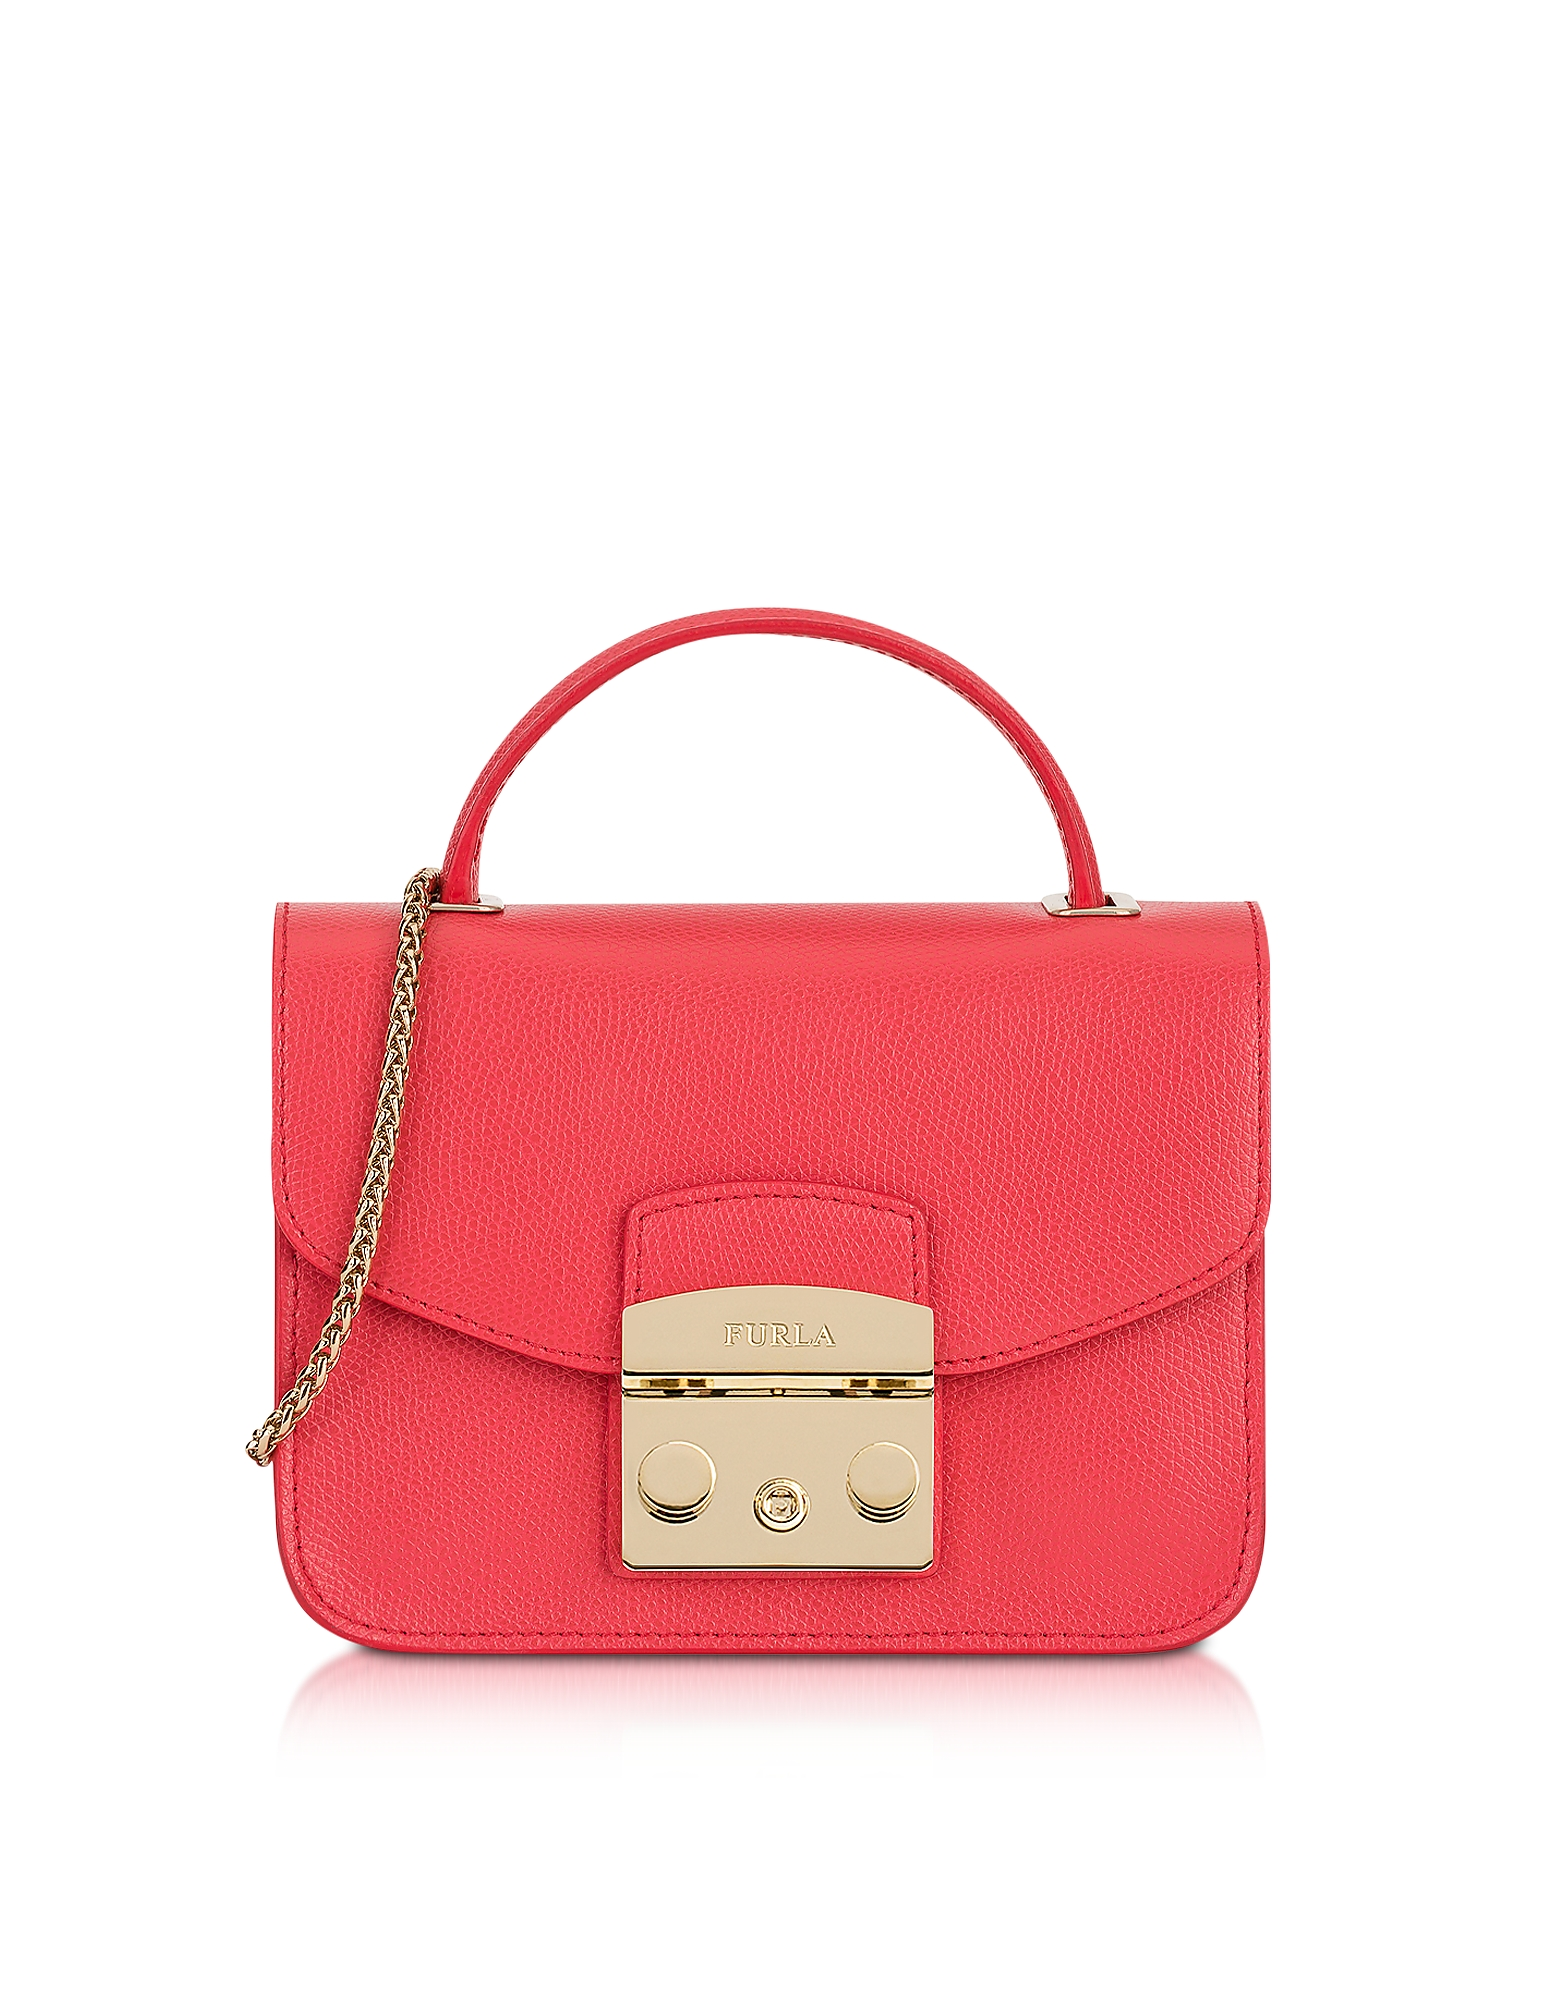 Furla Handbags, Rose Metropolis Mini Top Handle Crossbody Bag